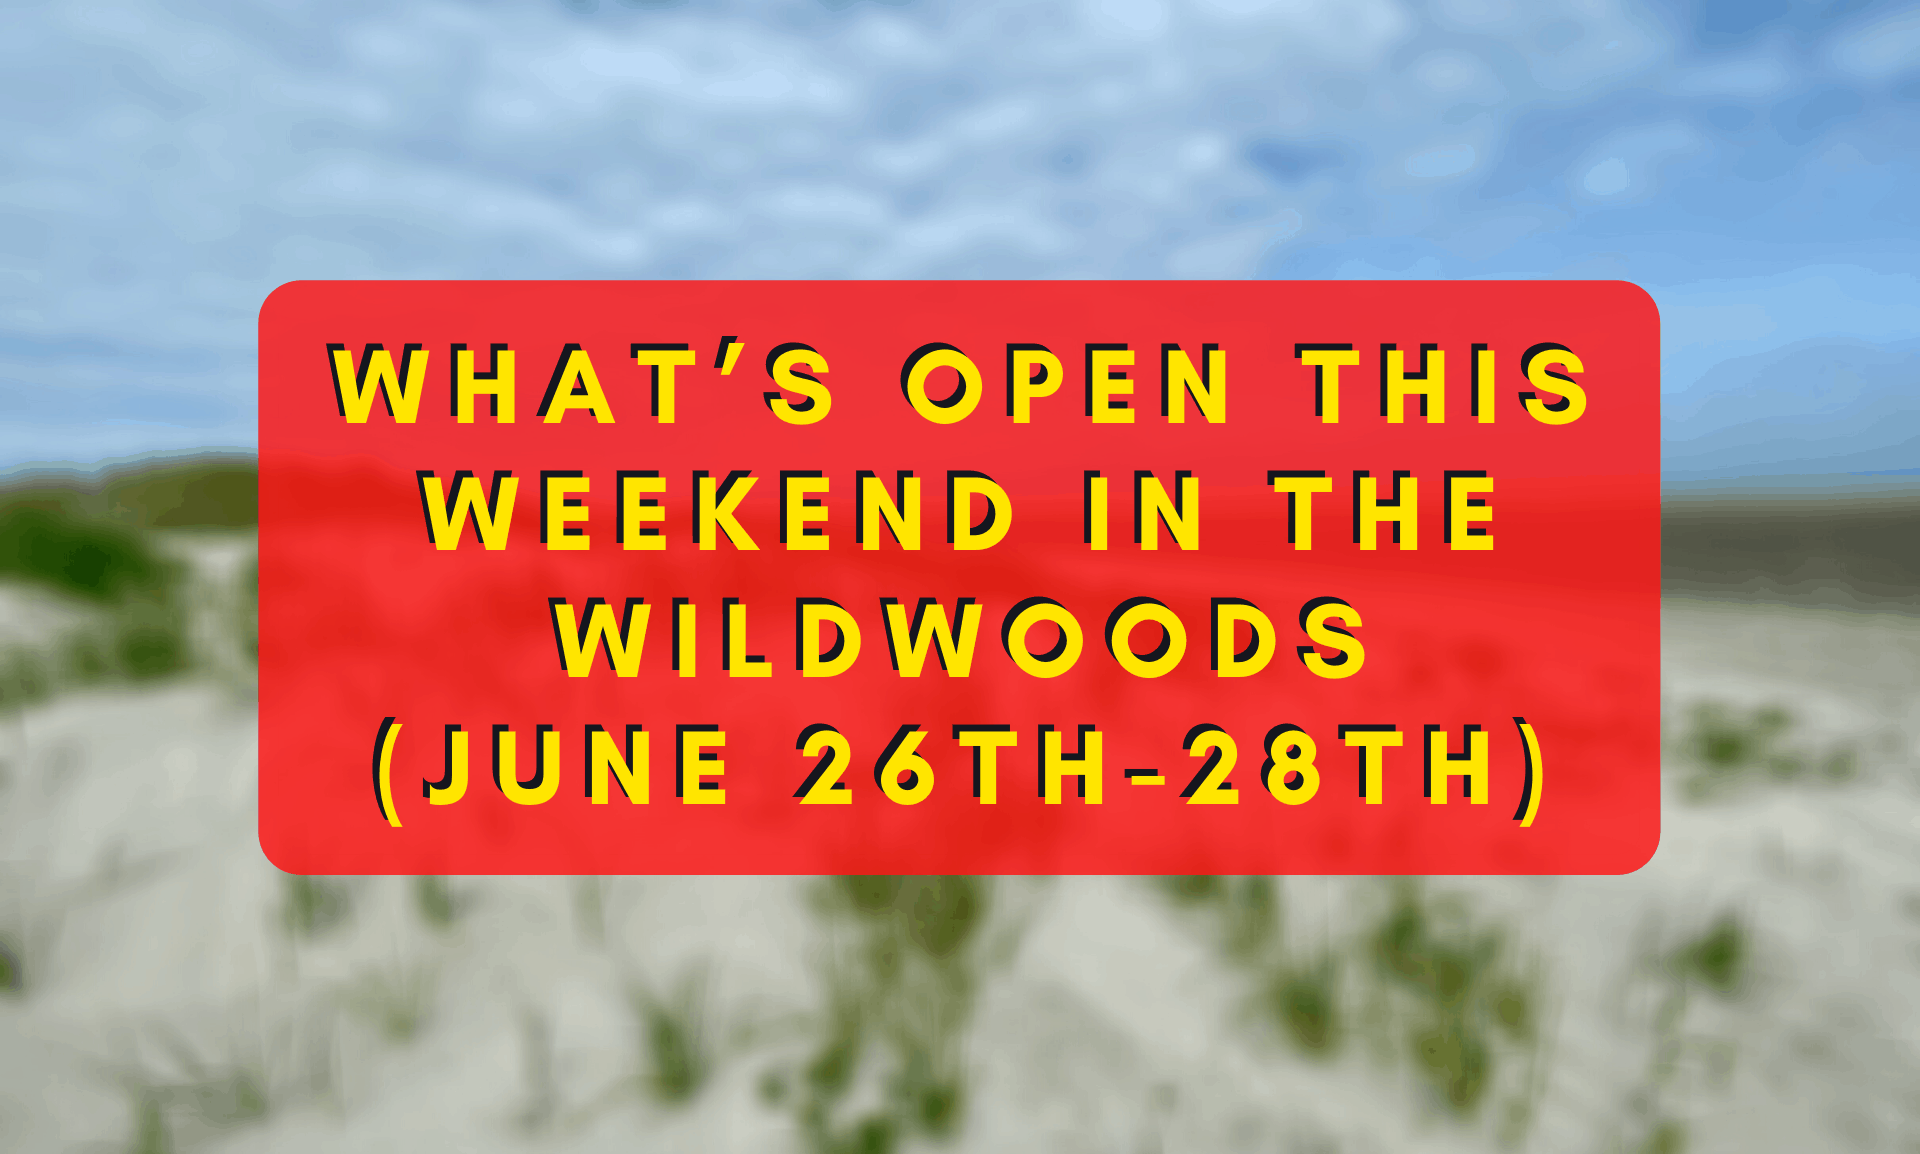 What's Open This Weekend In The Wildwoods (June 26th-June 28th)